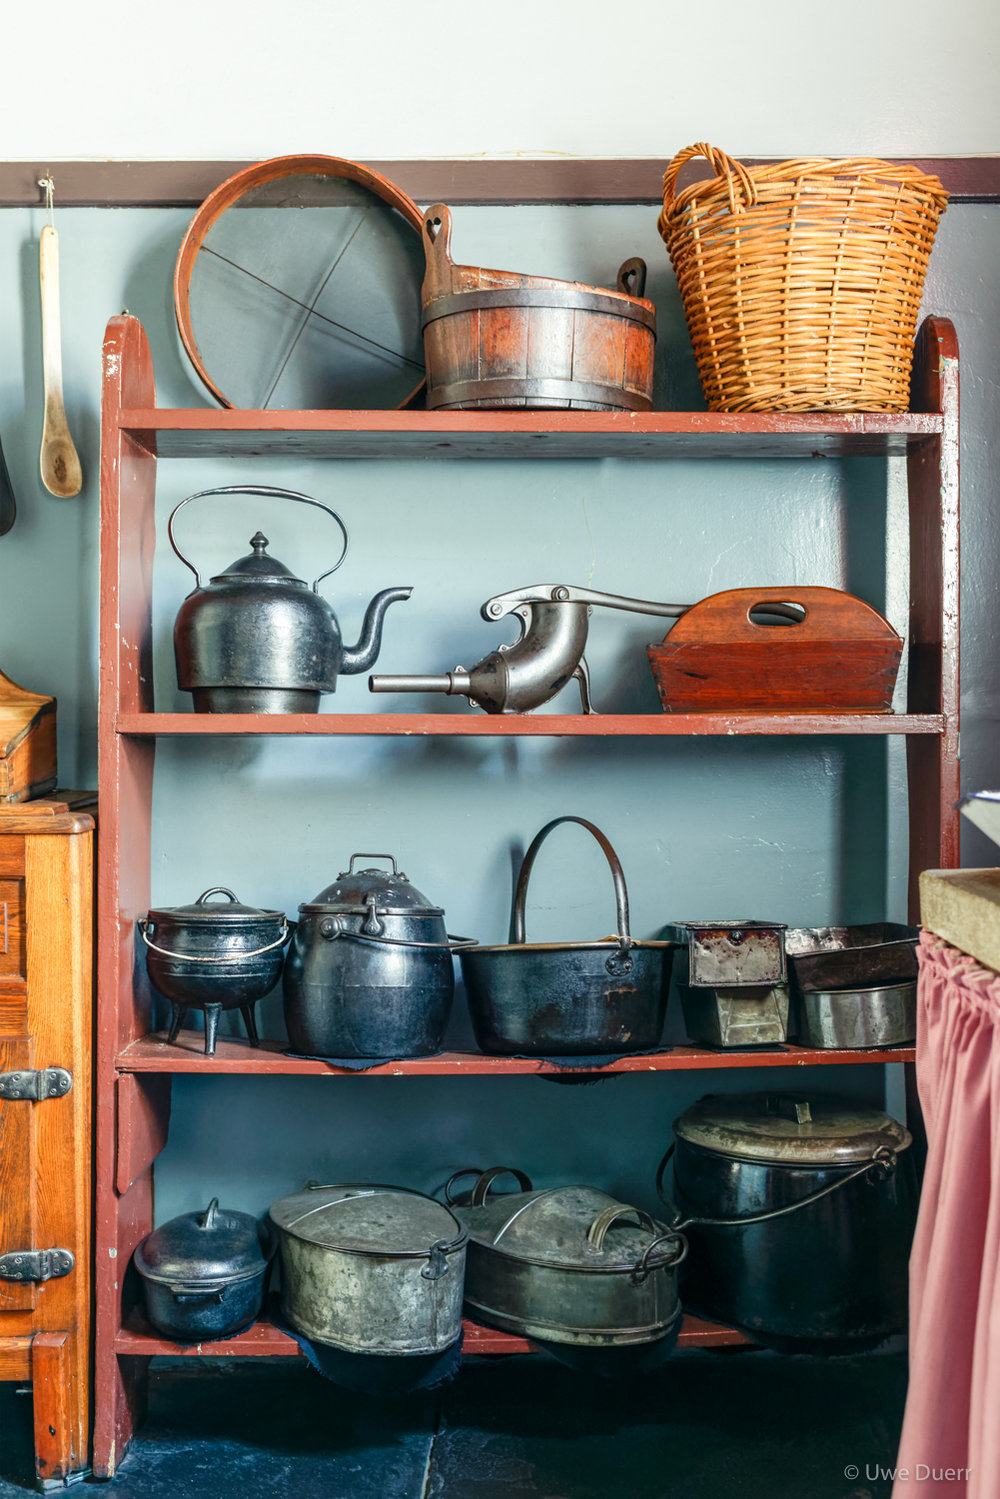 Details of the kitchen in Paul Kruger Museum, Pretoria.